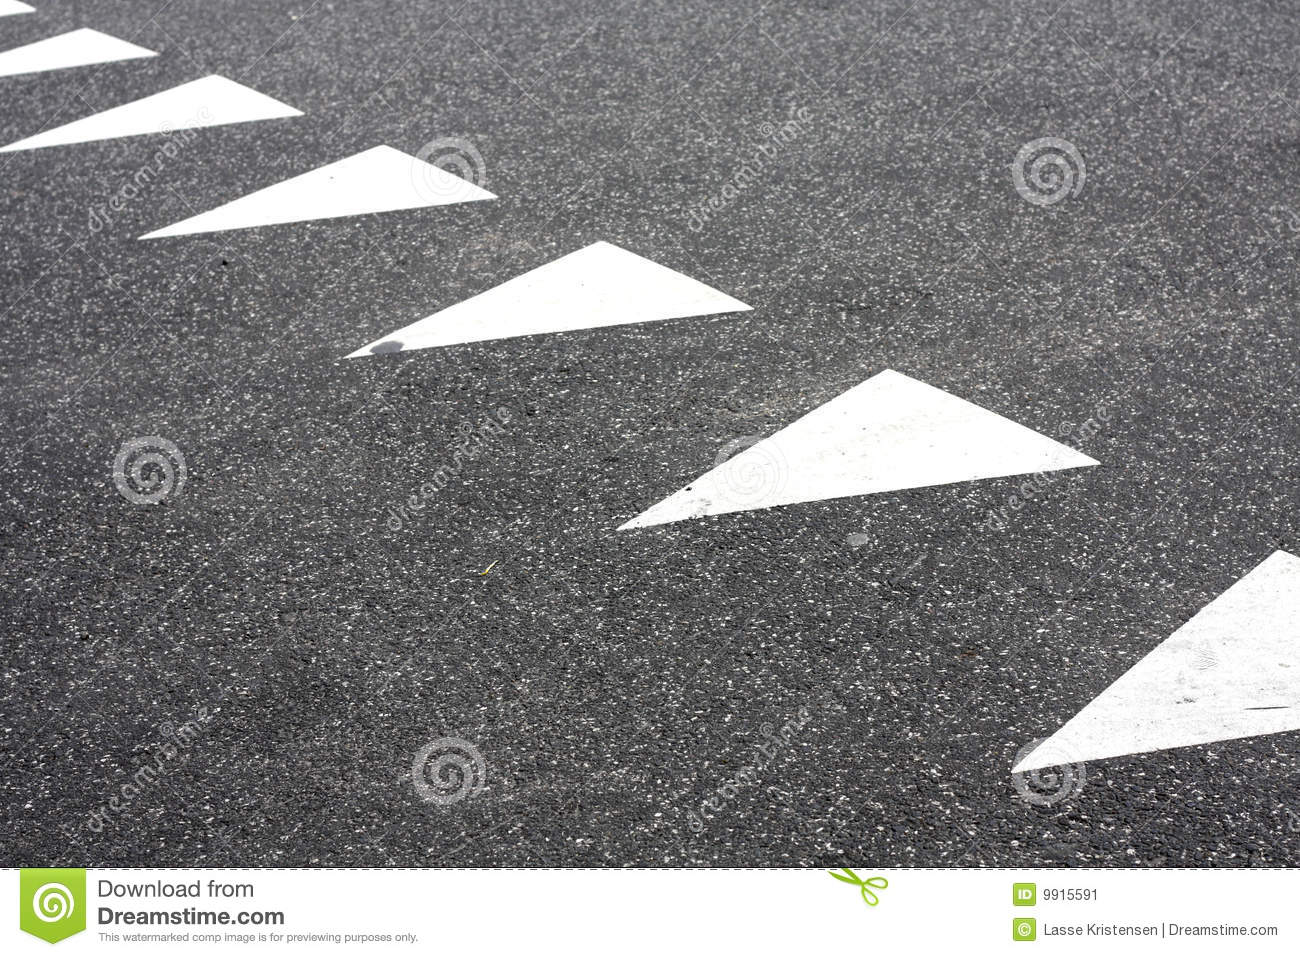 Triangle Road Signs >> Triangular Road Markings Stock Image - Image: 9915591